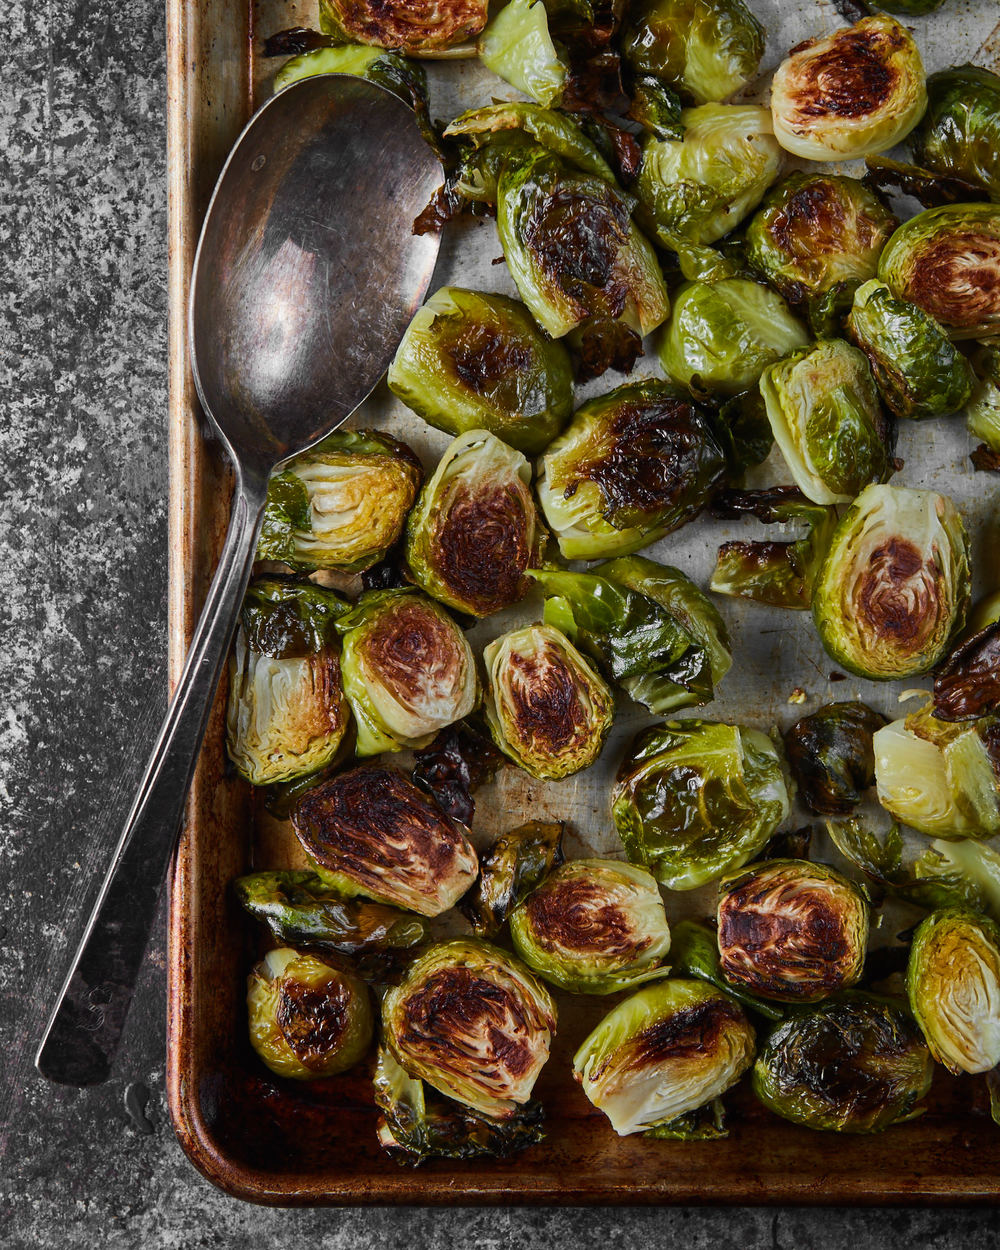 Brussel Sprouts_26.jpg